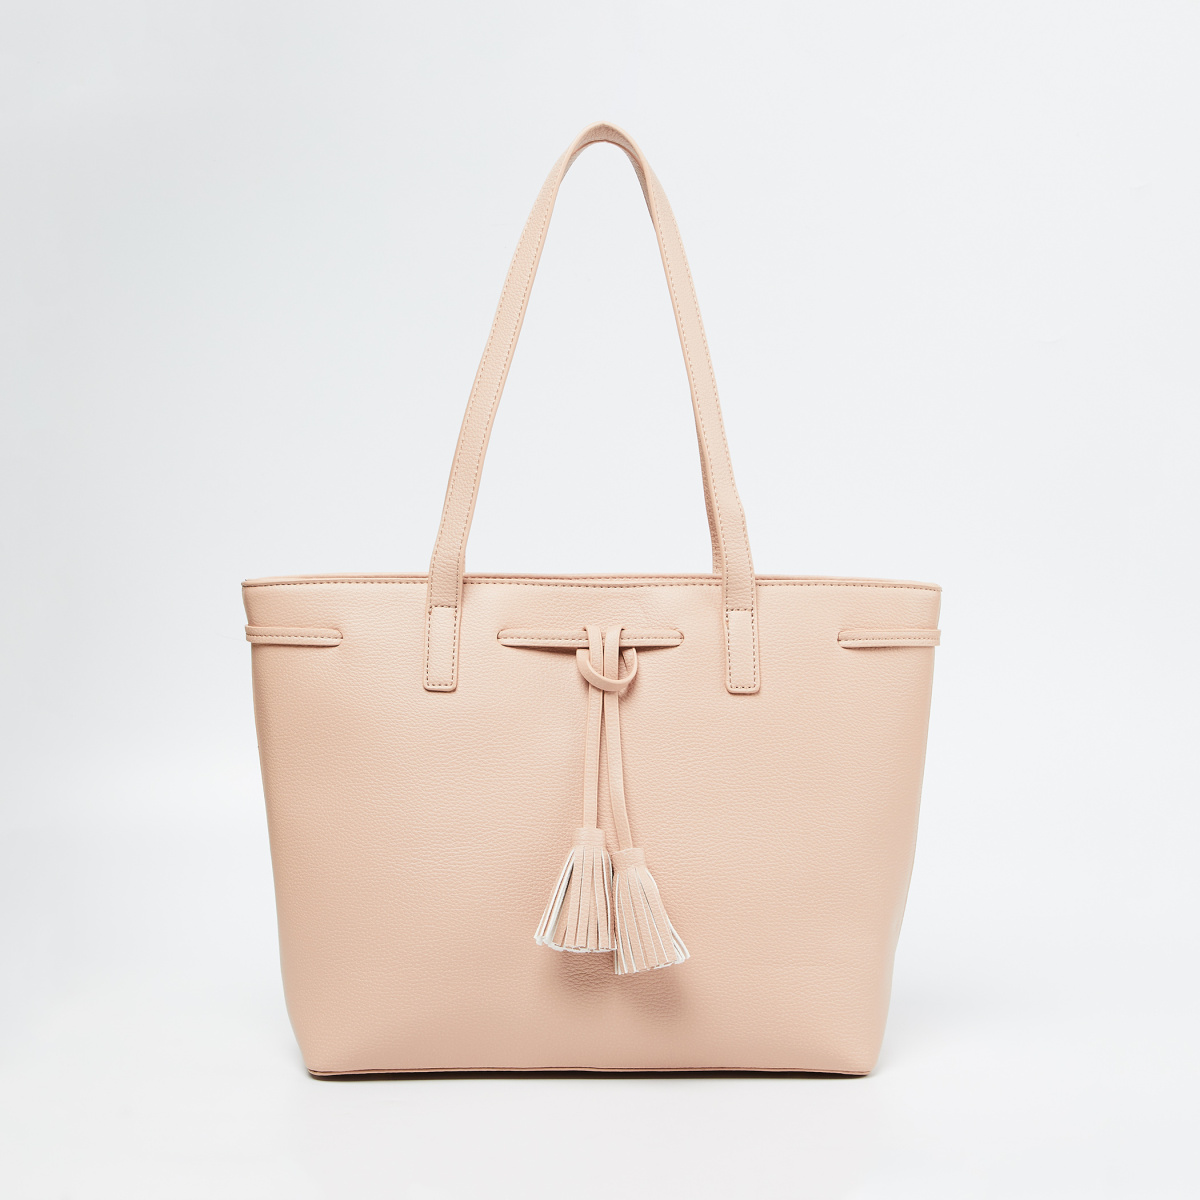 CODE Textured Tote Bag with Tassels